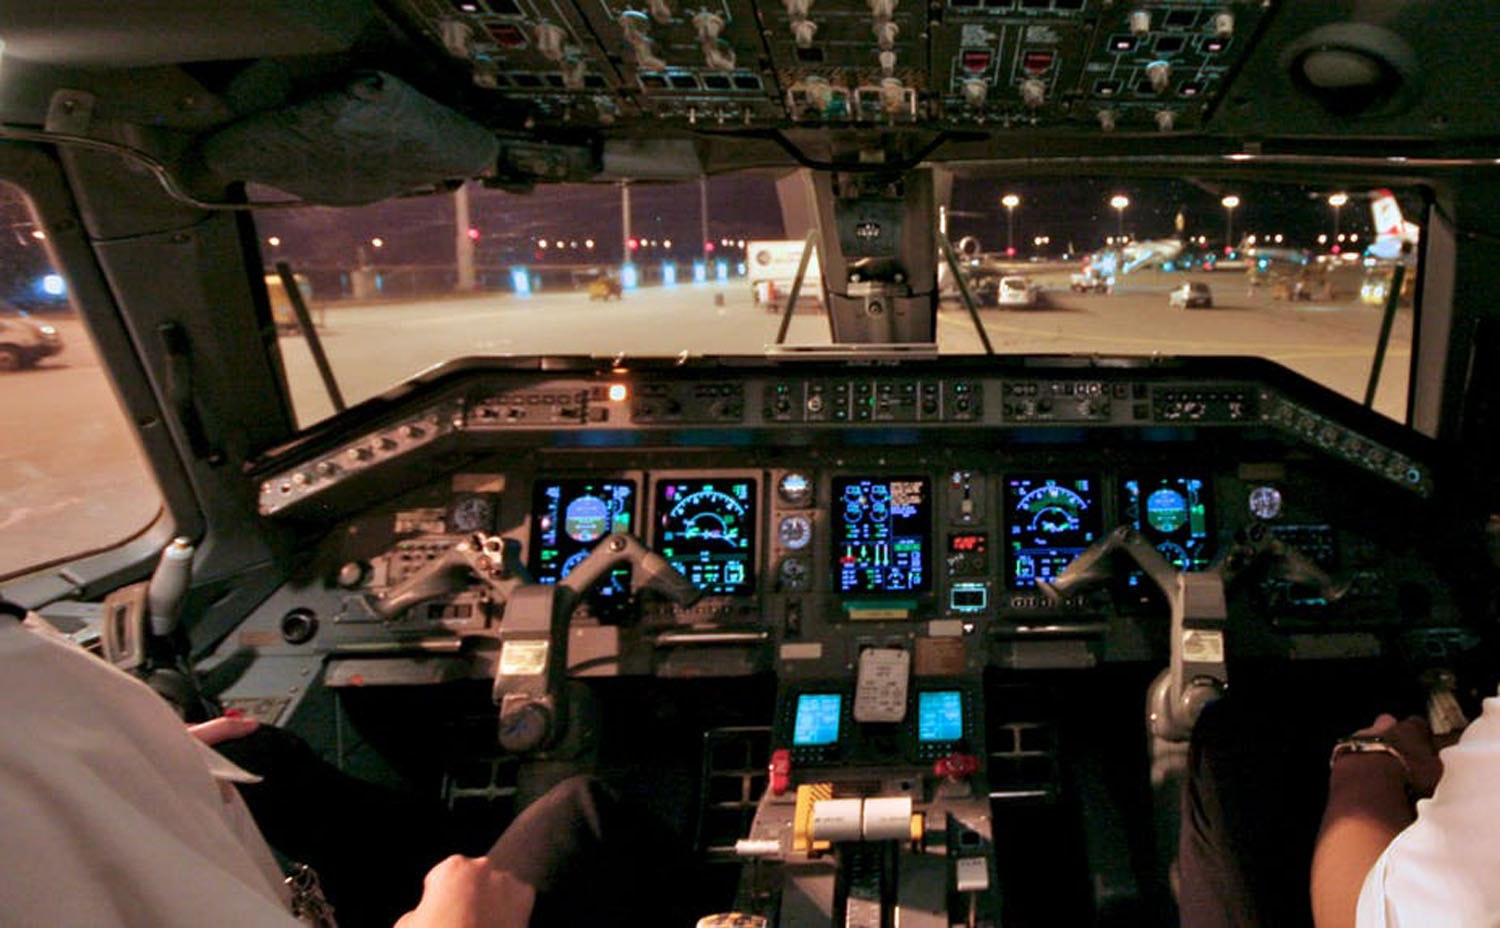 Are there two pilots in the cockpit?